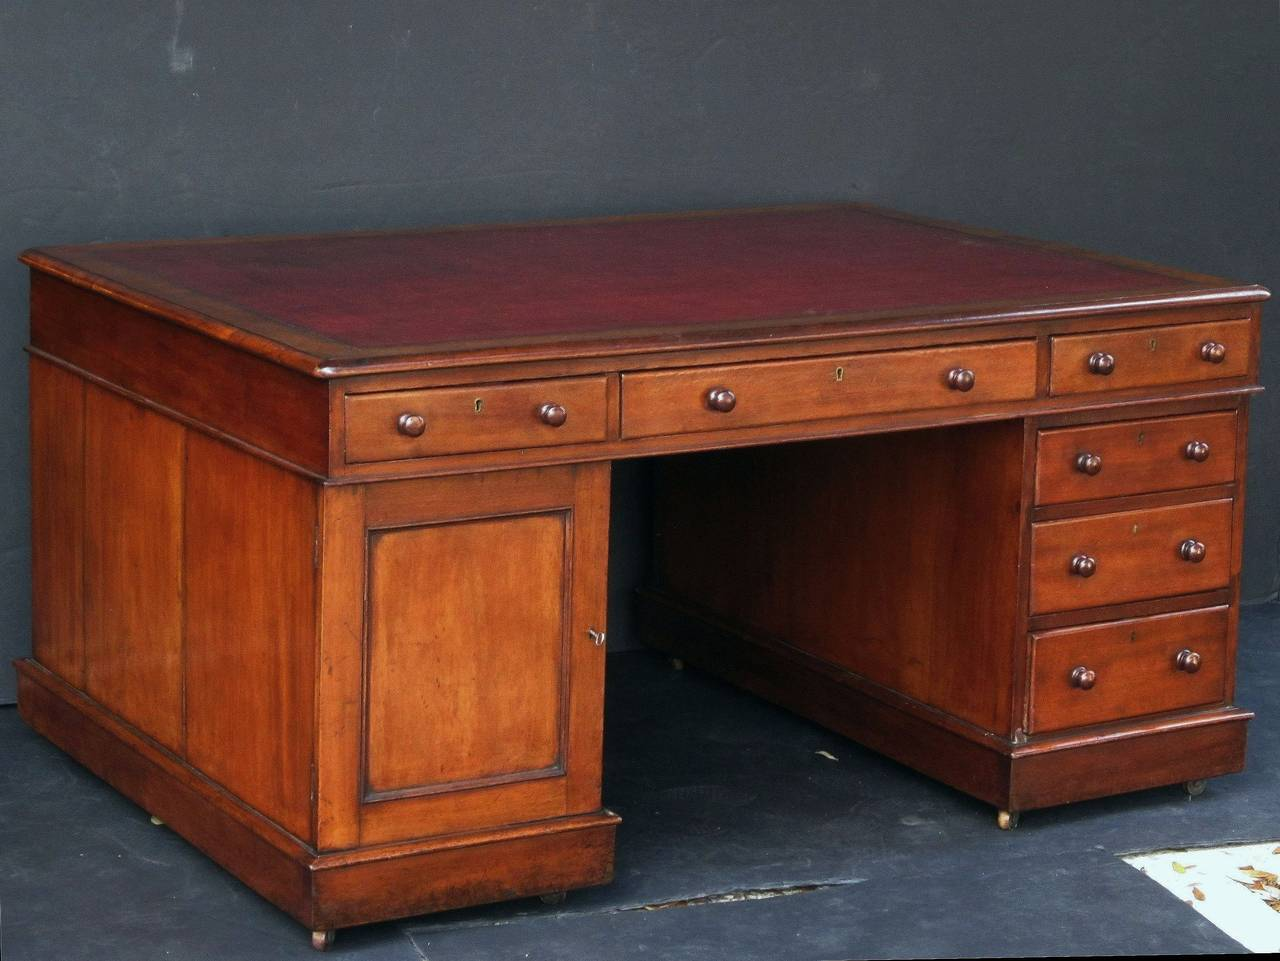 A handsome large English partner's desk of mahogany, featuring a moulded top inset with an embossed red leather, over a long drawer flanked by two short drawers on opposing sides. 